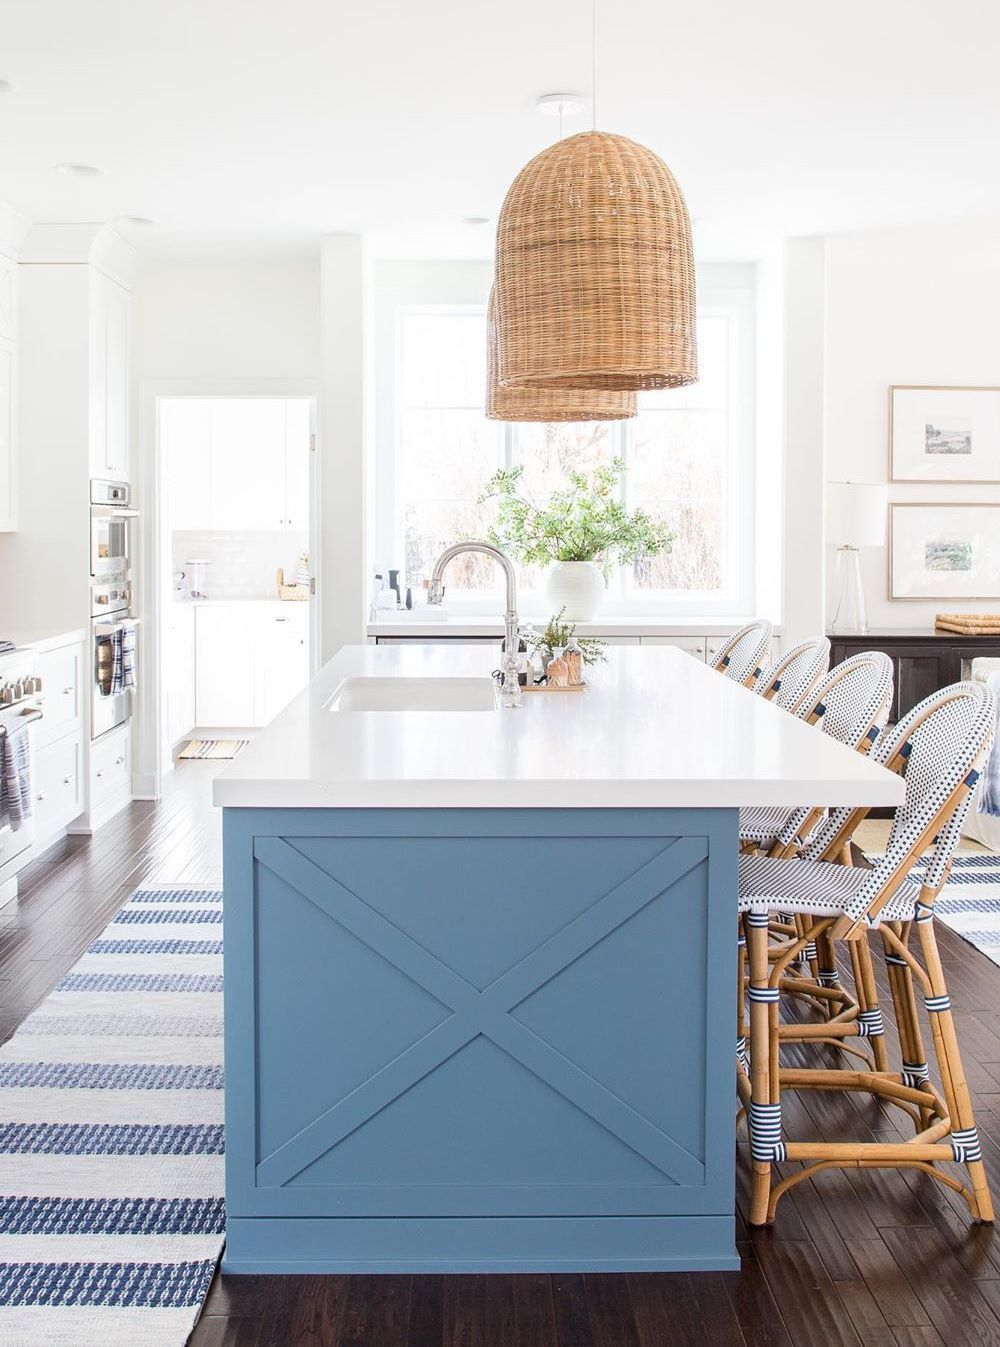 17 Coastal Kitchens Decor Ideas For A Beach Or Summer Home